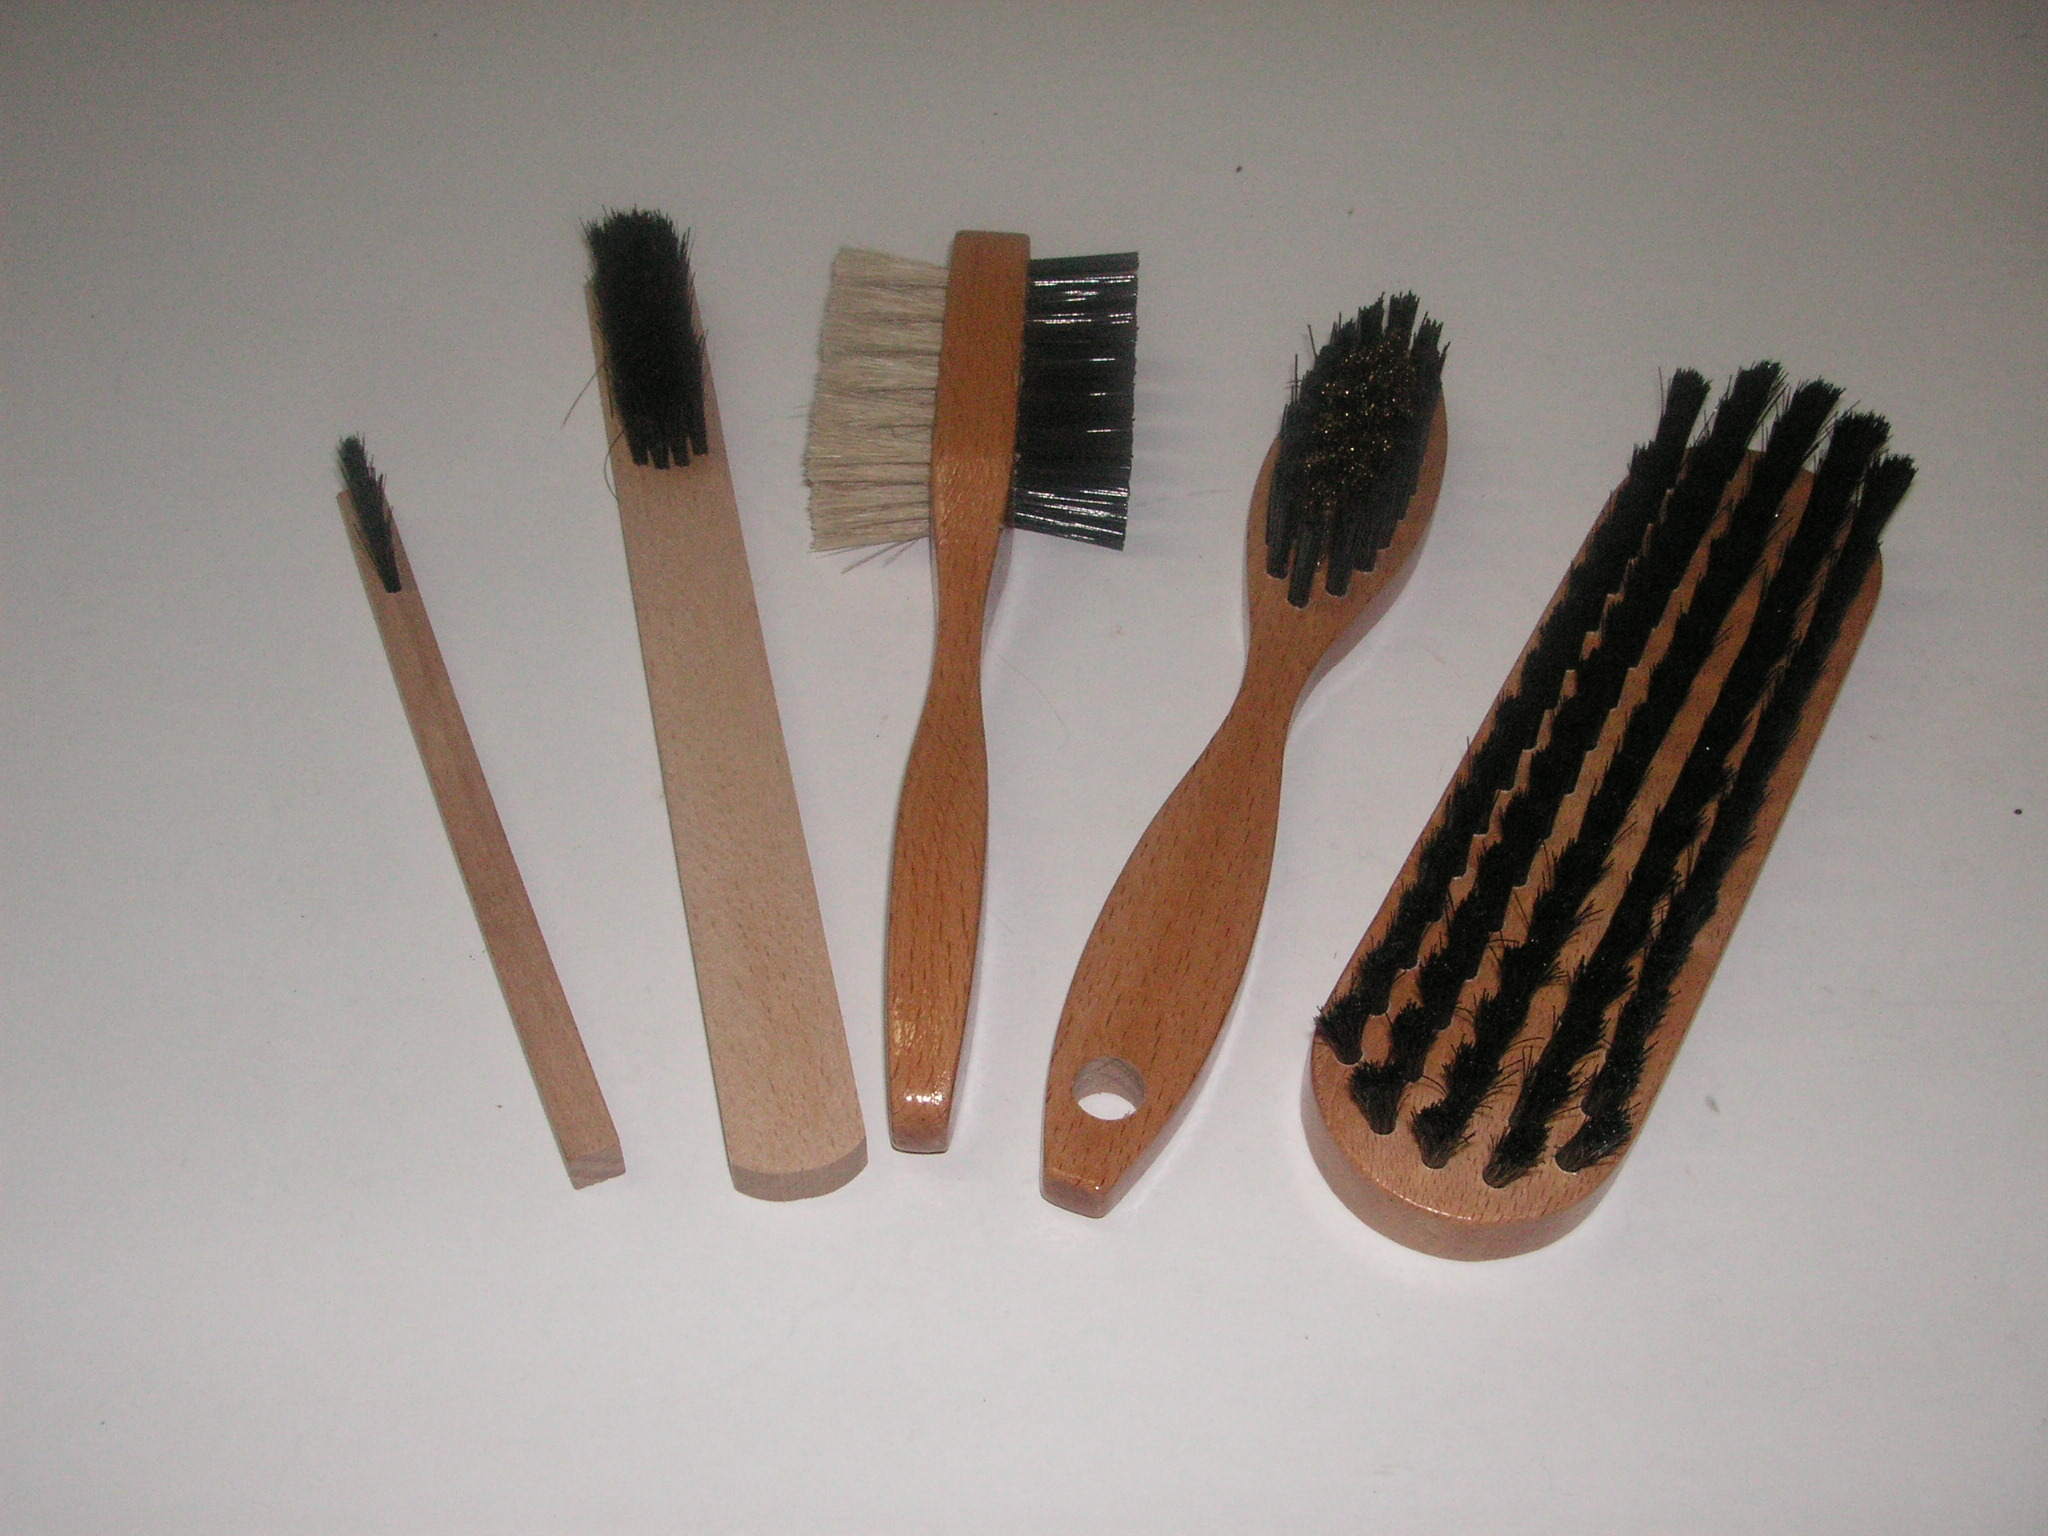 Brosses à main